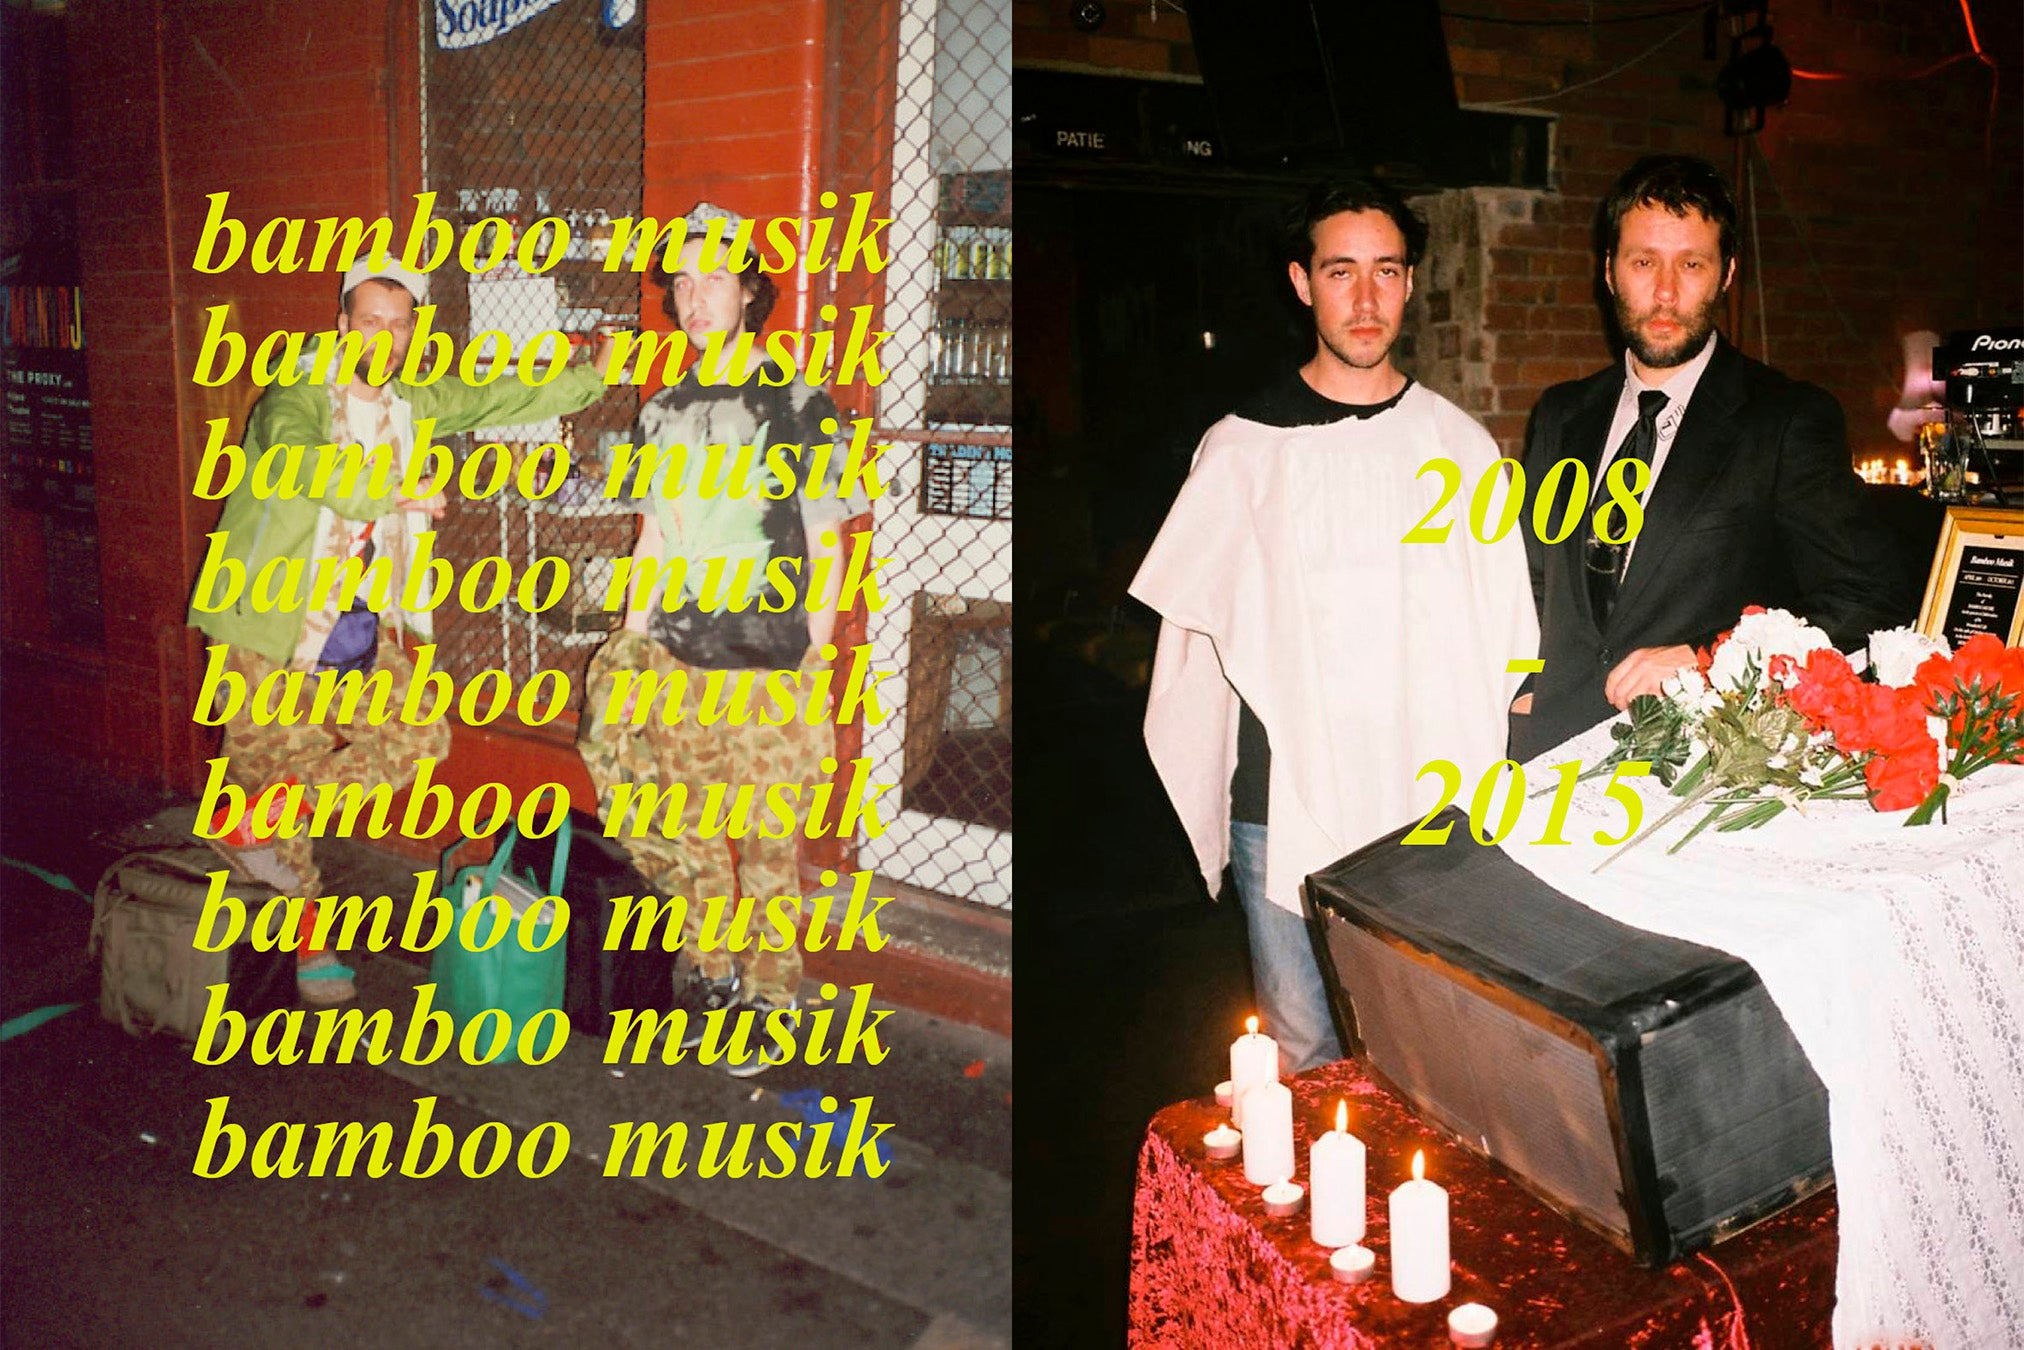 POSITIVE MESSAGES #66 BAMBOO MUSIK